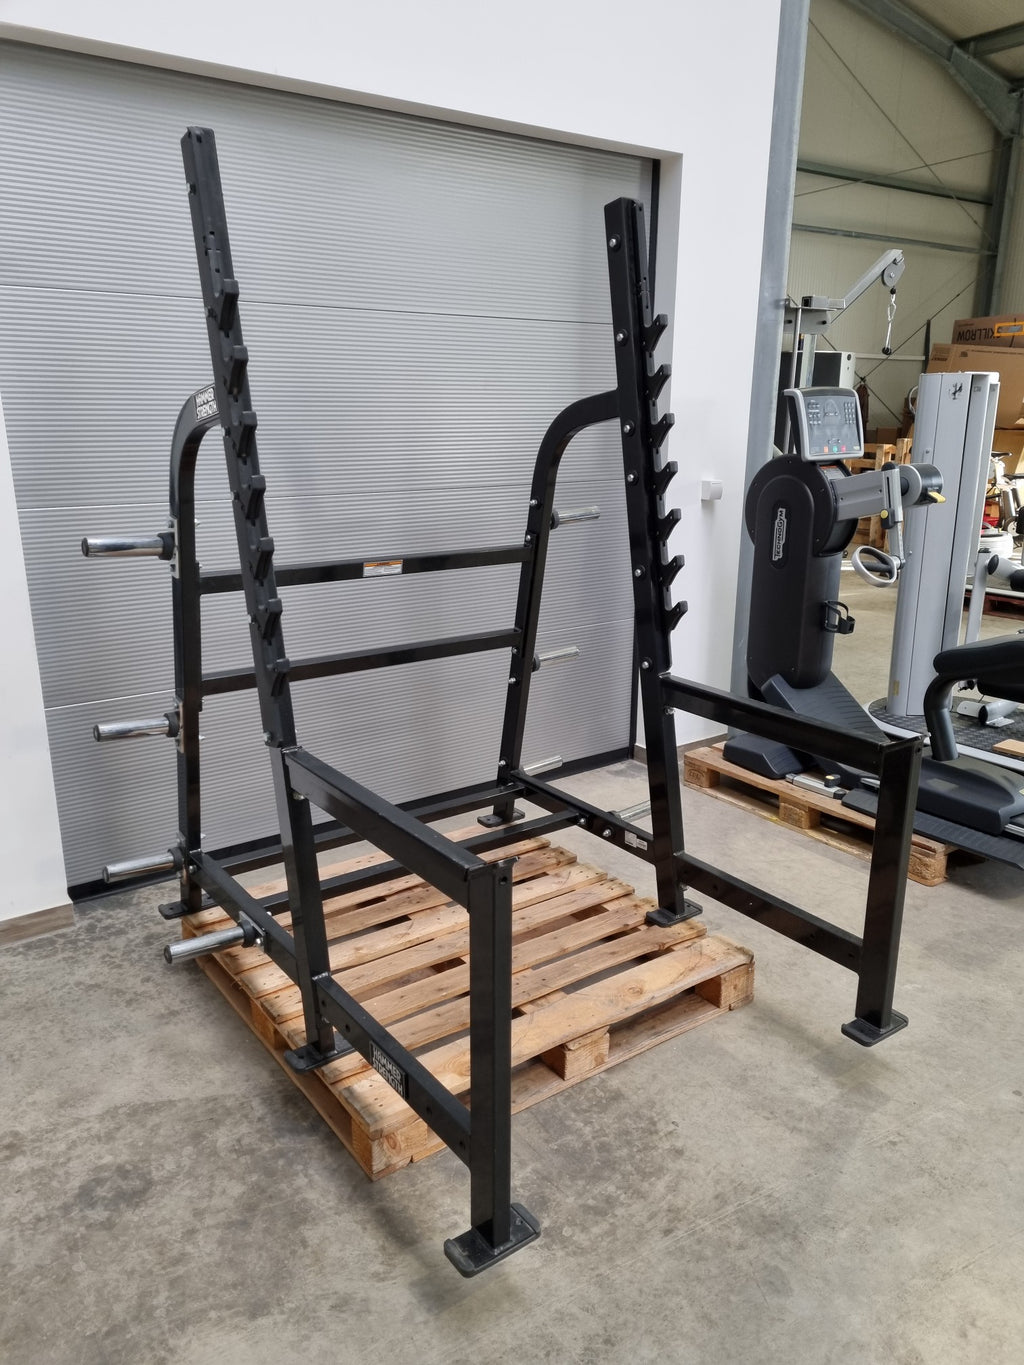 HAMMER STRENGTH Multi Power Rack Bankdrücken Kniebeugen Gestell Fitness Gym